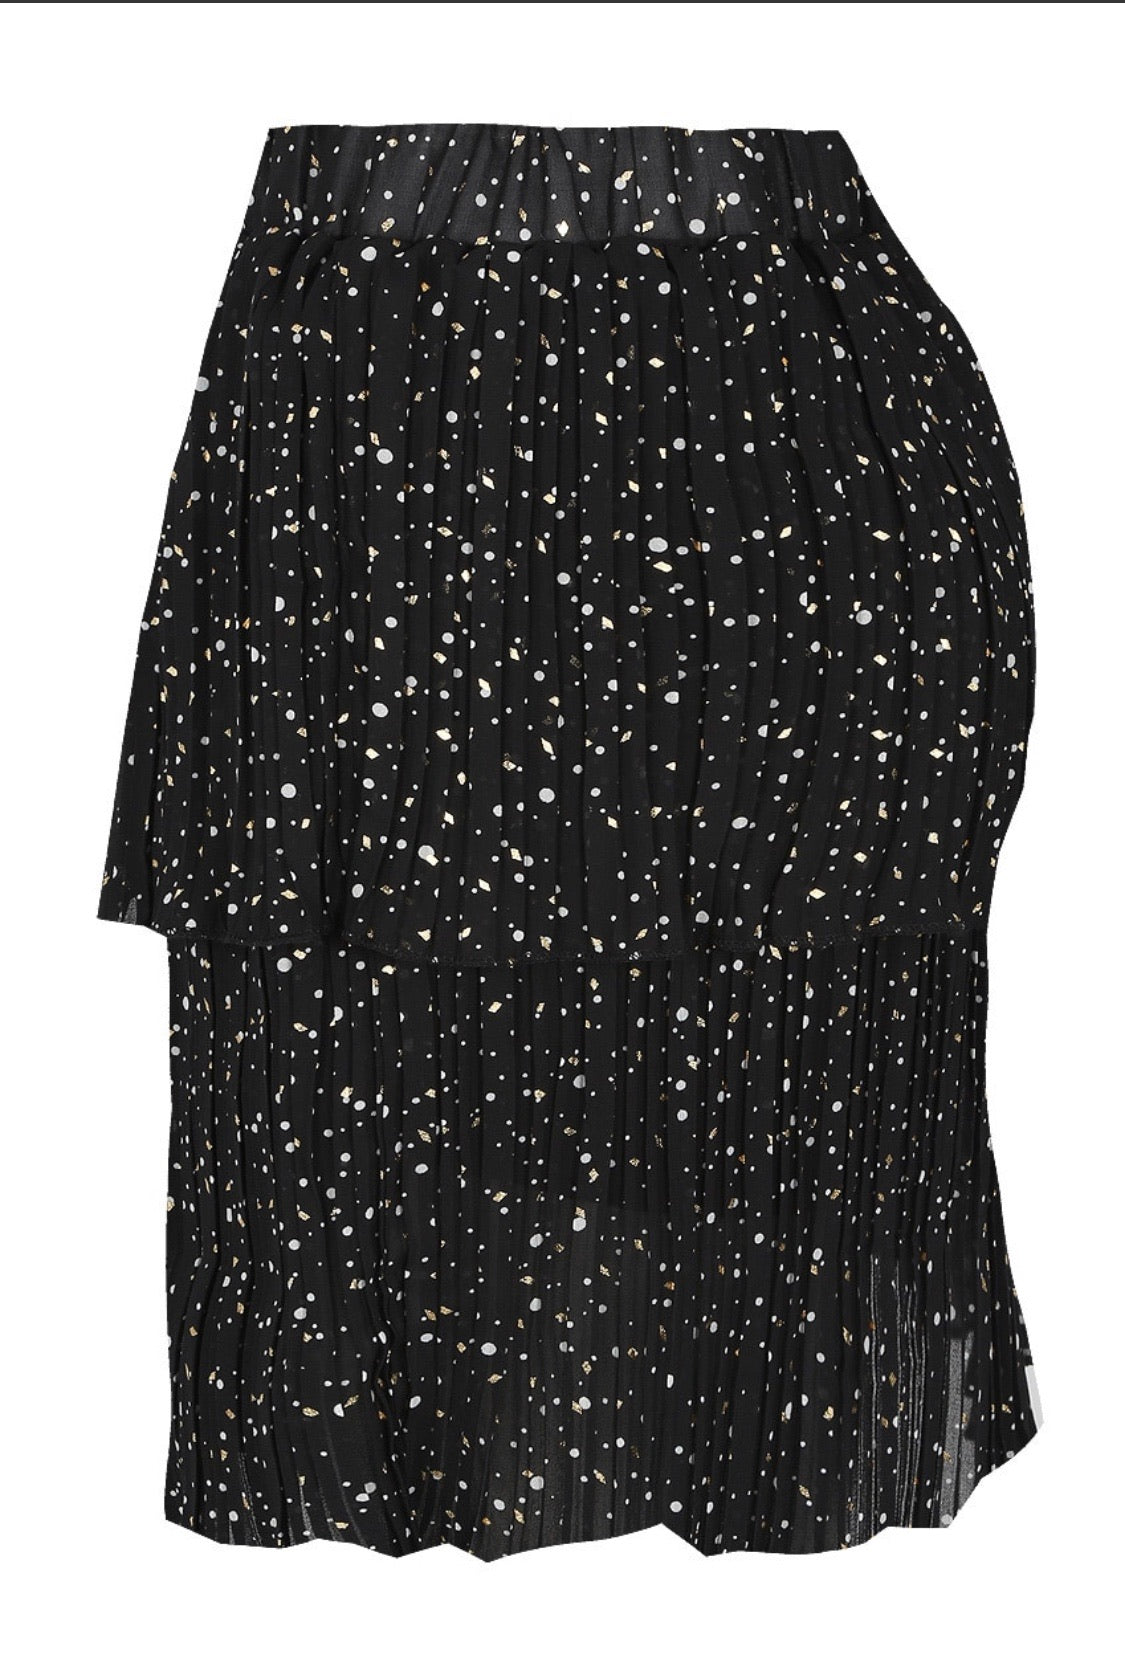 Midnight Sky Skirt